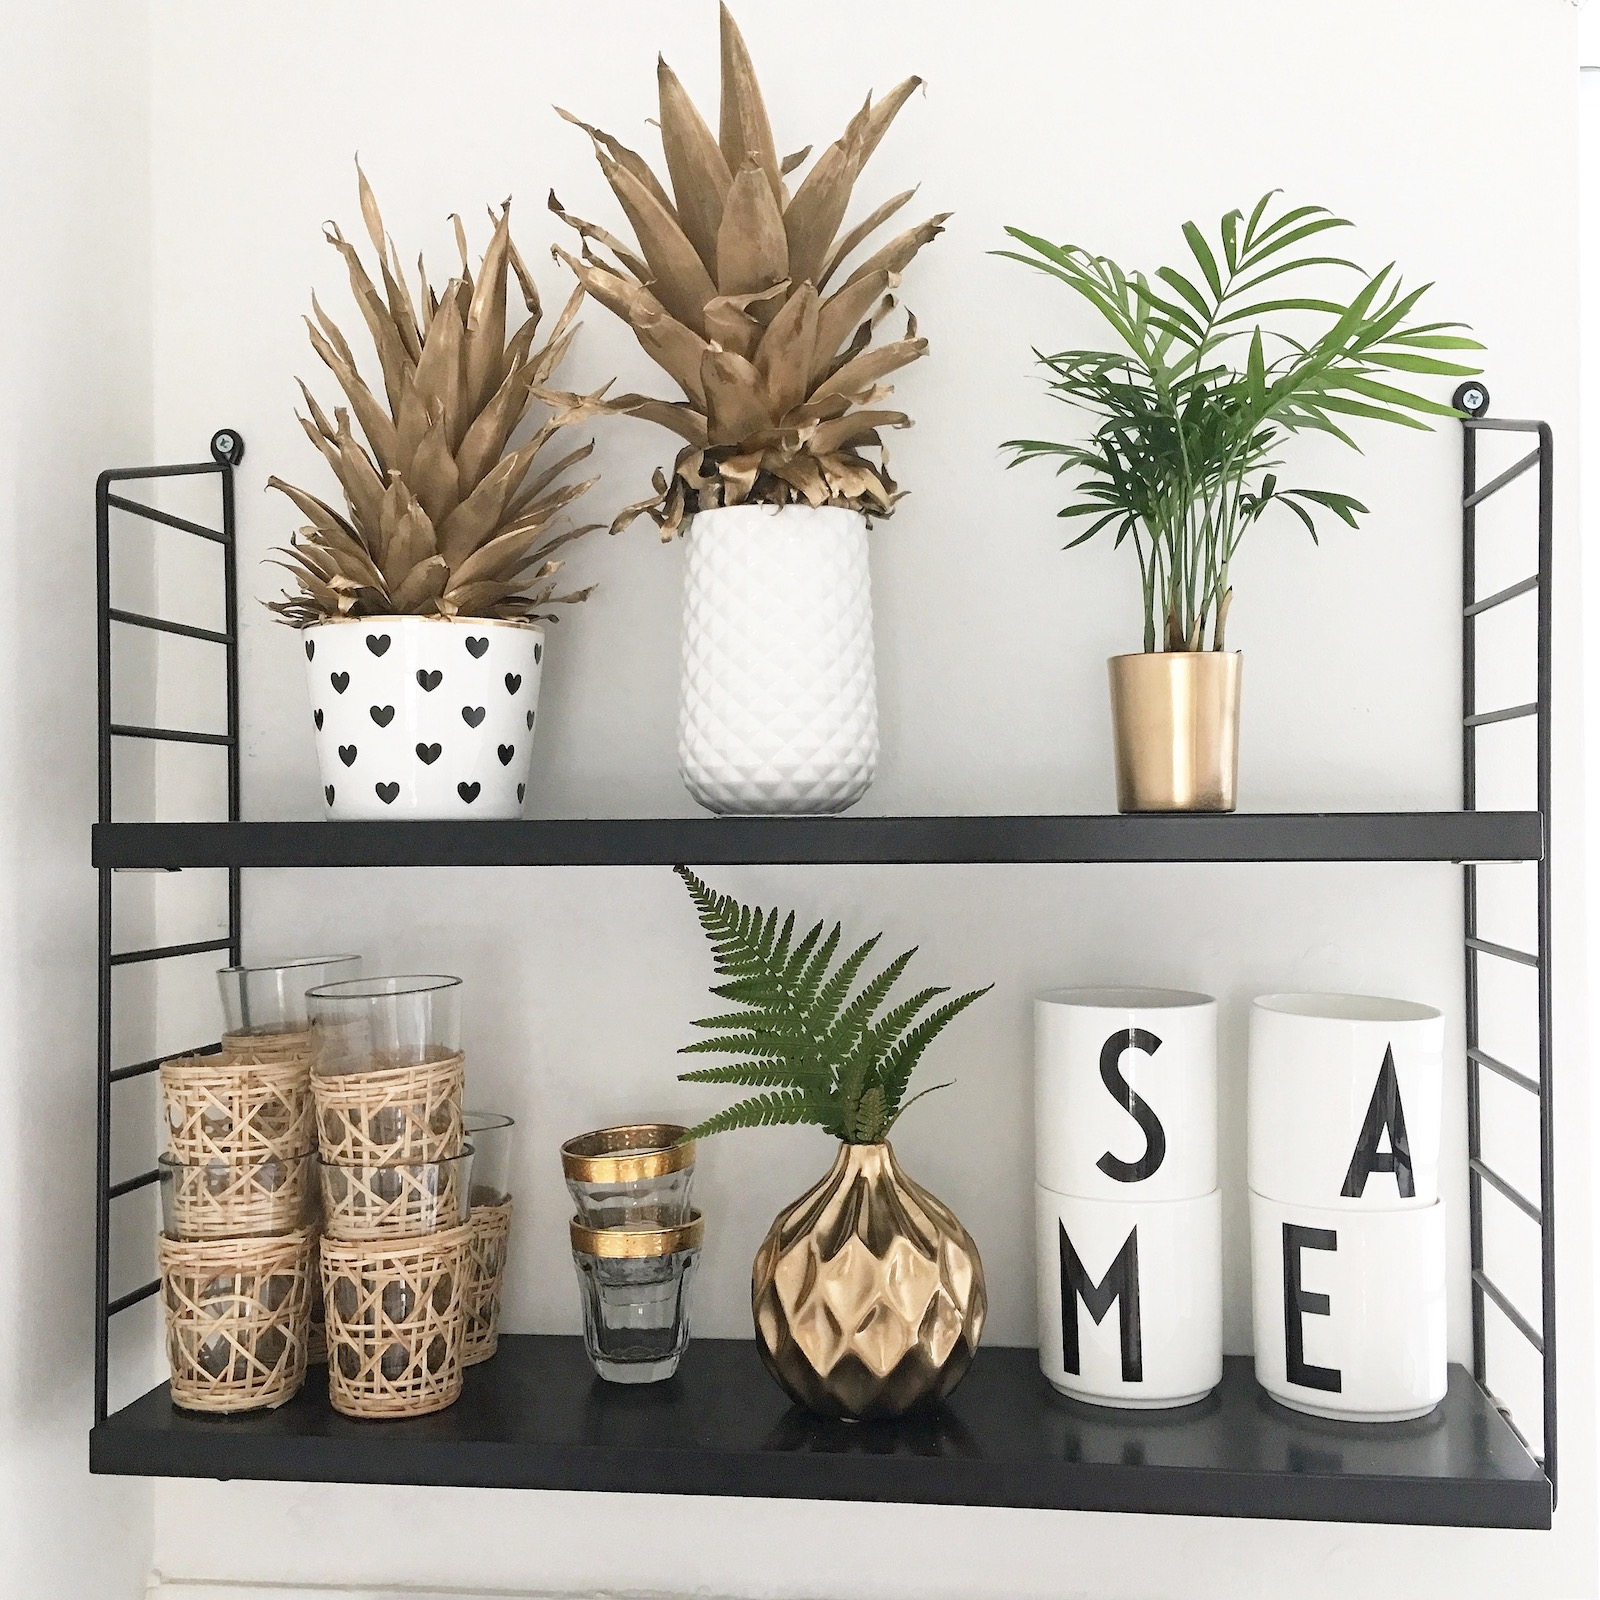 diy deko gold shelfie sophiagaleria sophiagaleria. Black Bedroom Furniture Sets. Home Design Ideas